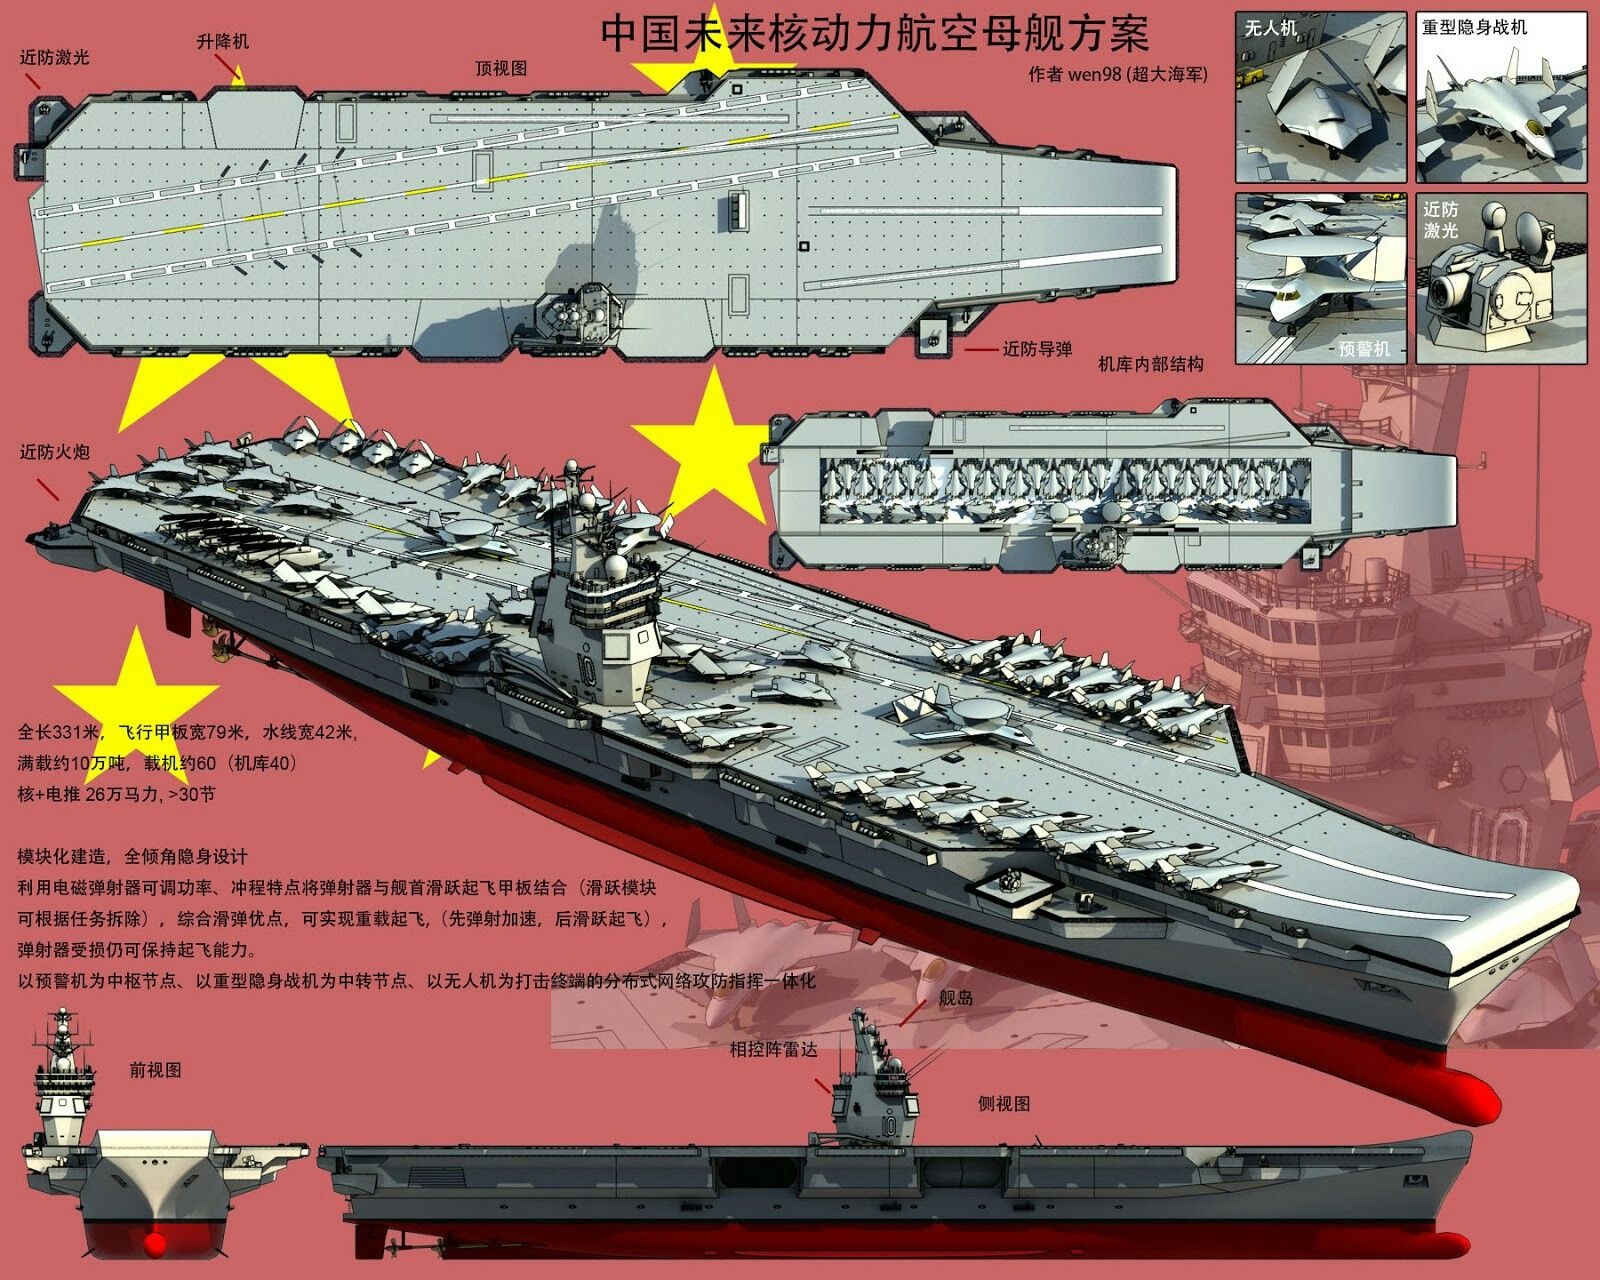 Chinese Future Super Carrier Concept Aircraft Carrier Navy Ships Aircraft